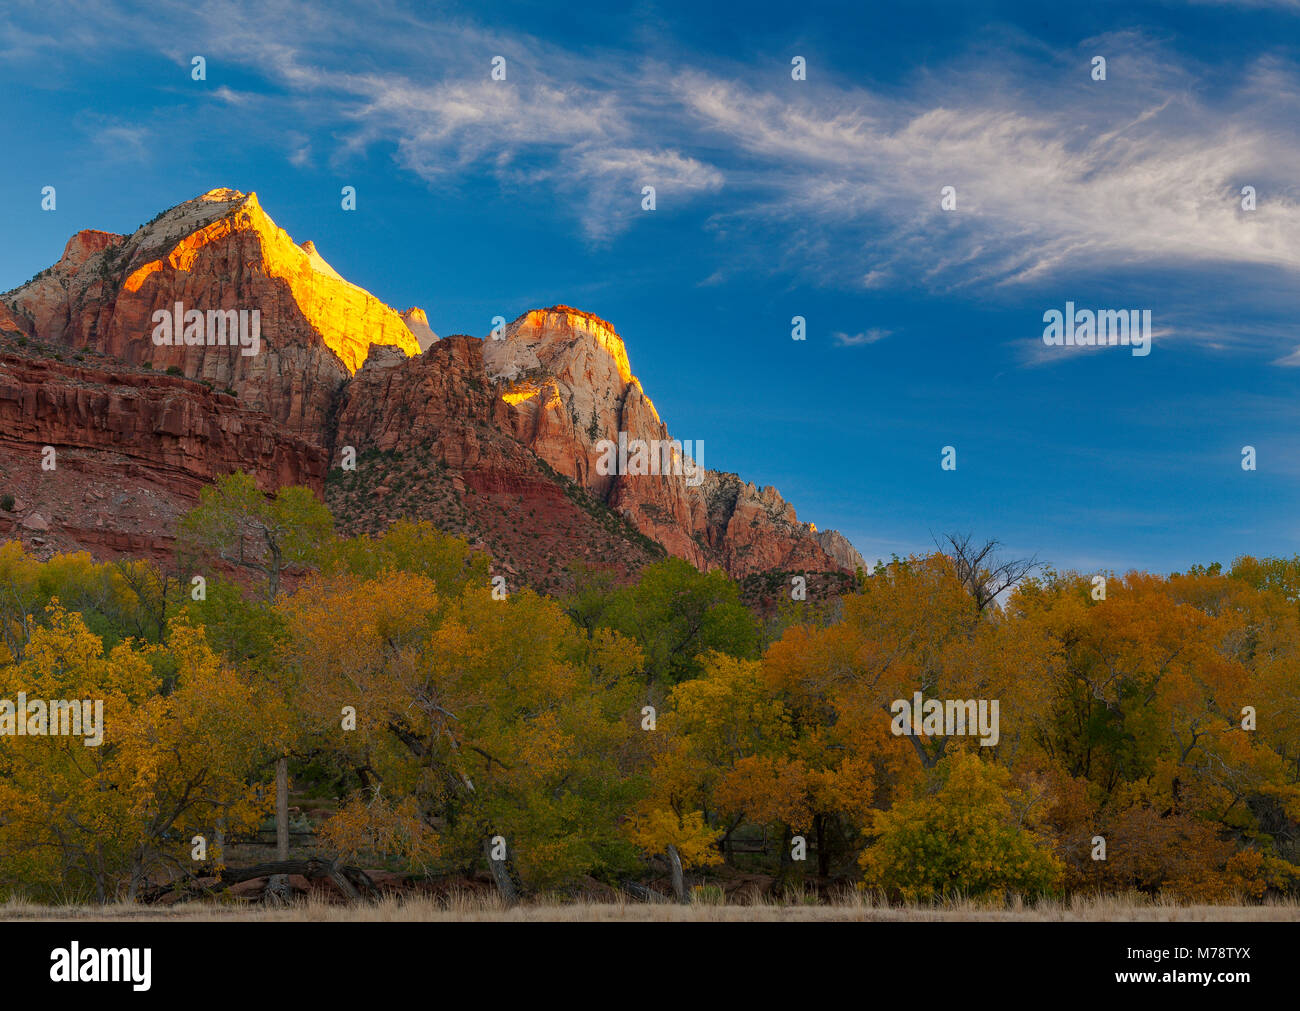 Sunrise, The Sentinel, Zion National Park, Utah - Stock Image